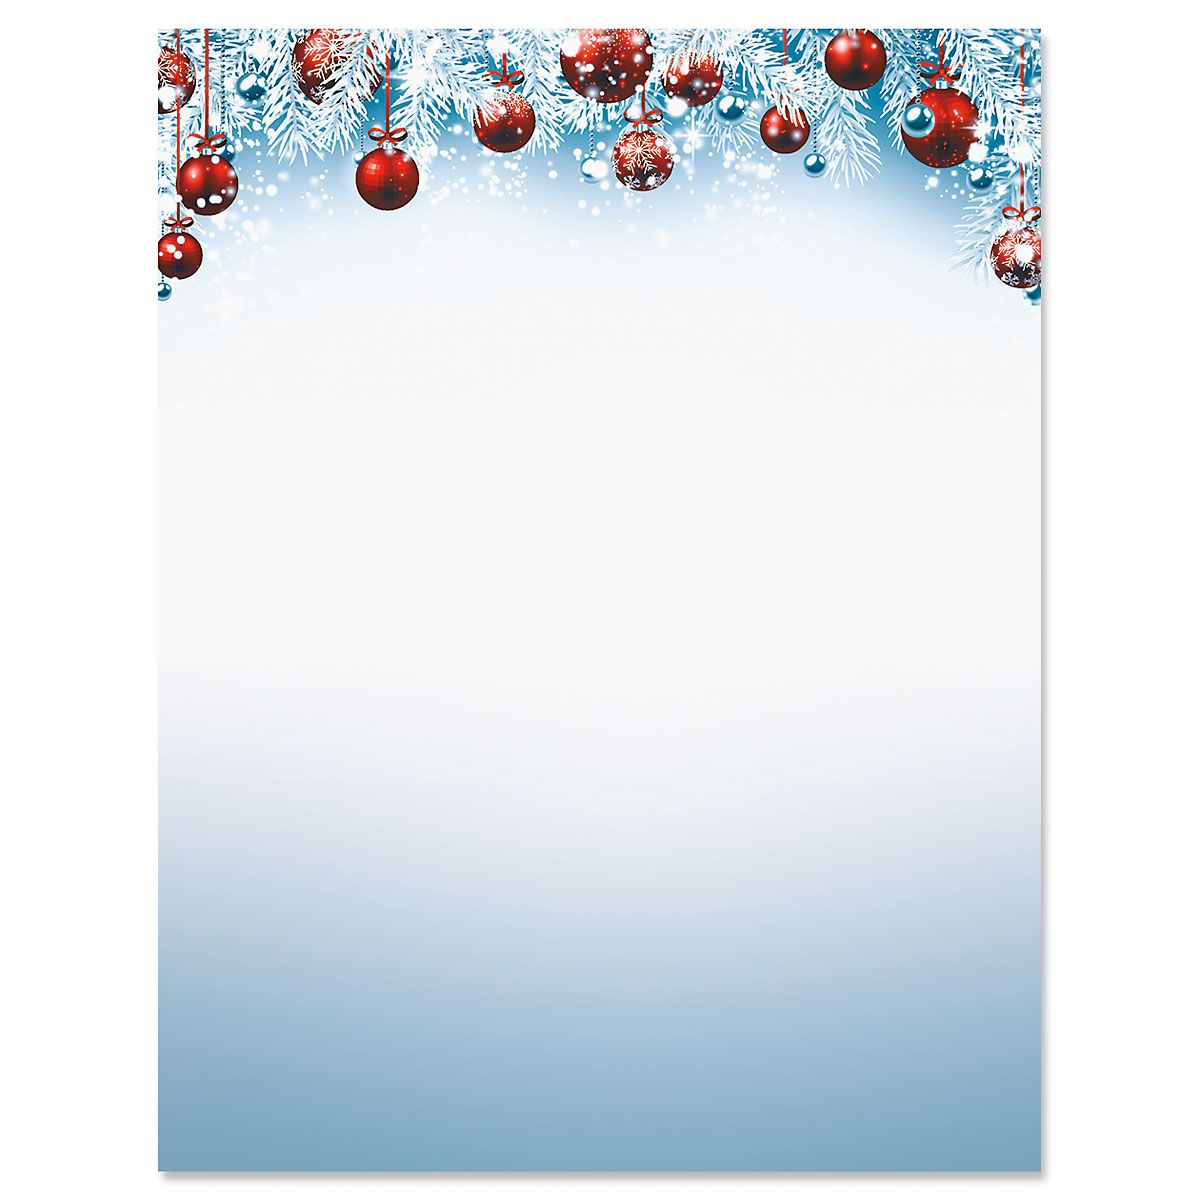 Red Ornaments Deluxe Christmas Letter Papers